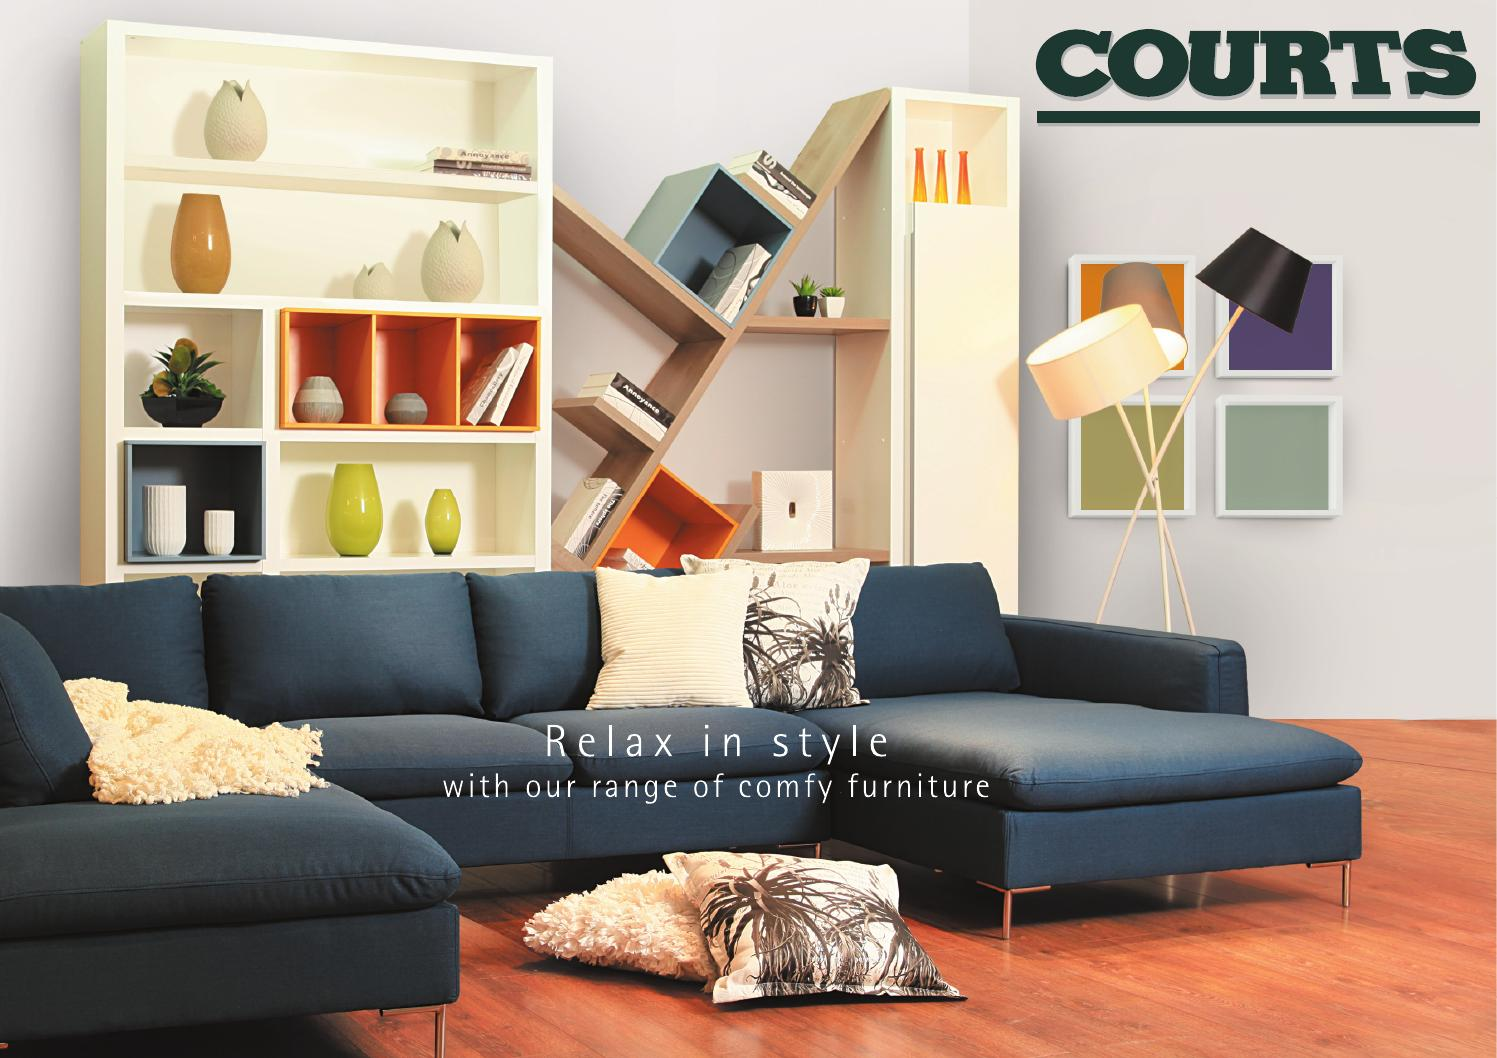 Courts Mauritius Furniture Catalogue 2015 By Dora Can Issuu